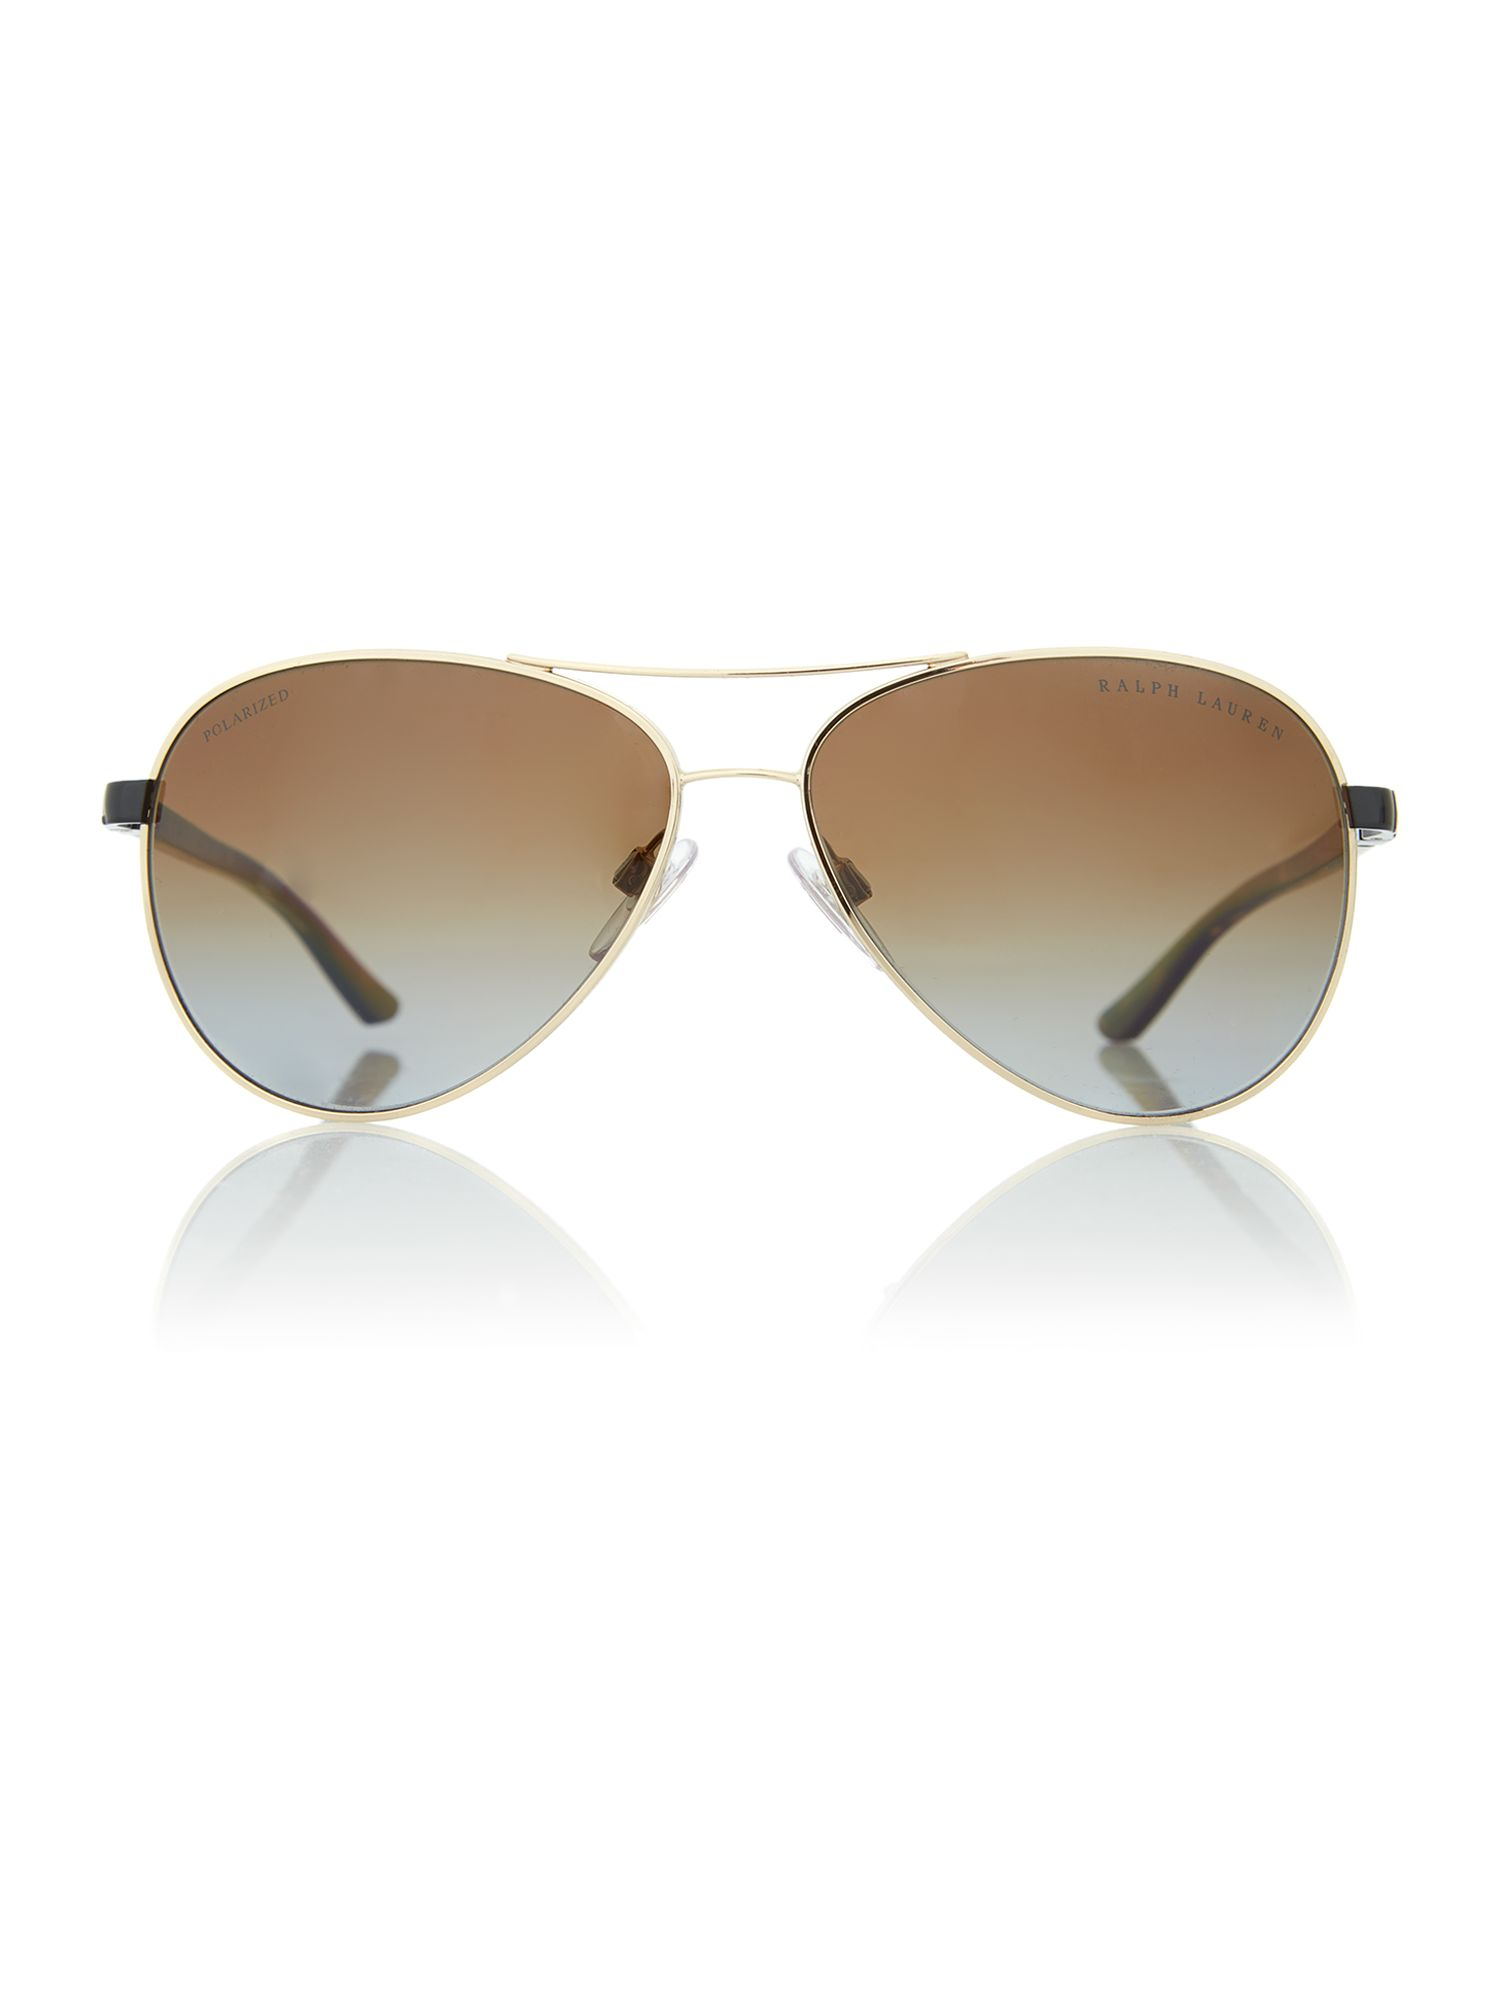 Shiny gold ladies avaitor sunglasses